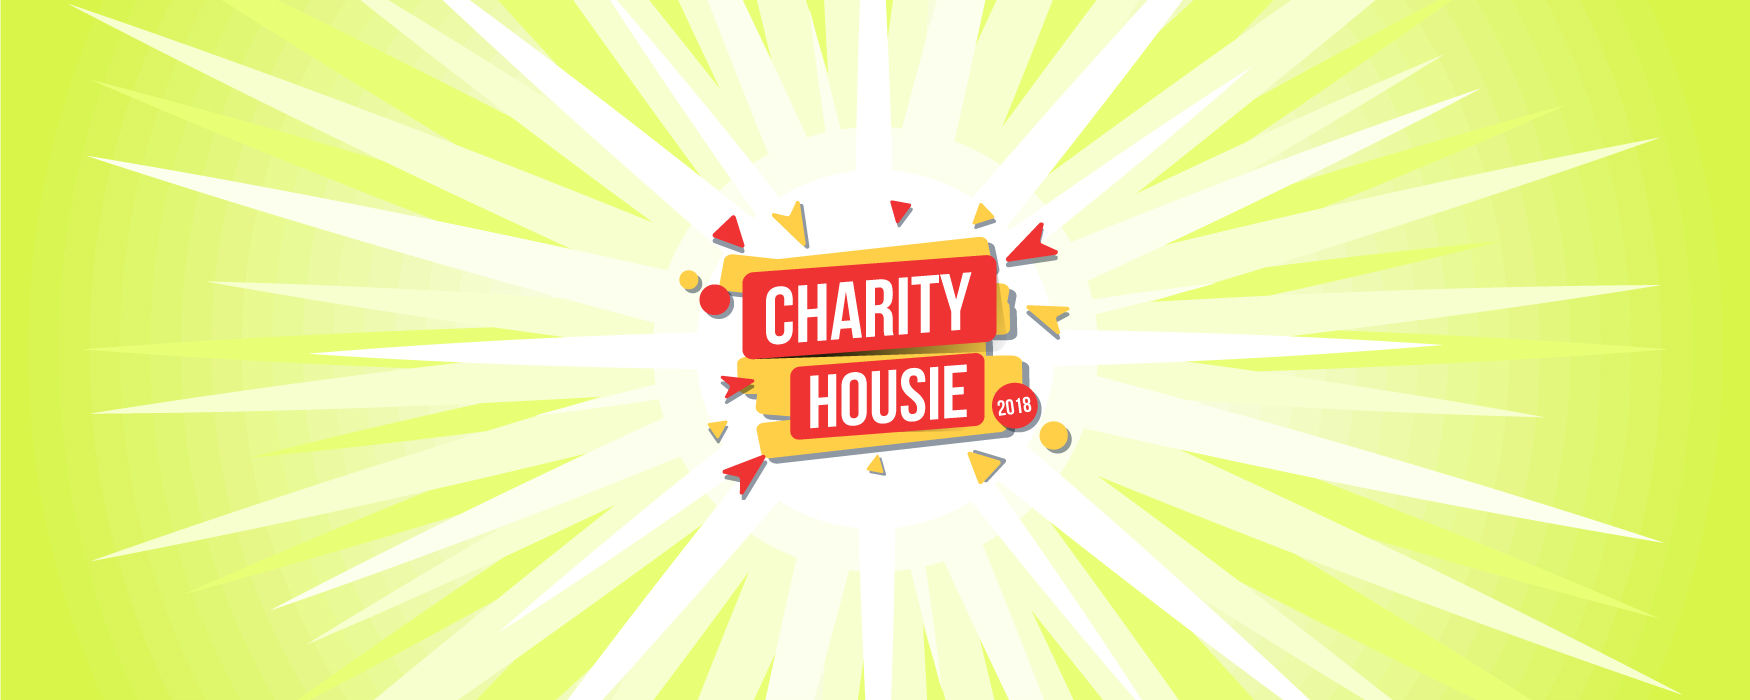 Charity Housie 2018